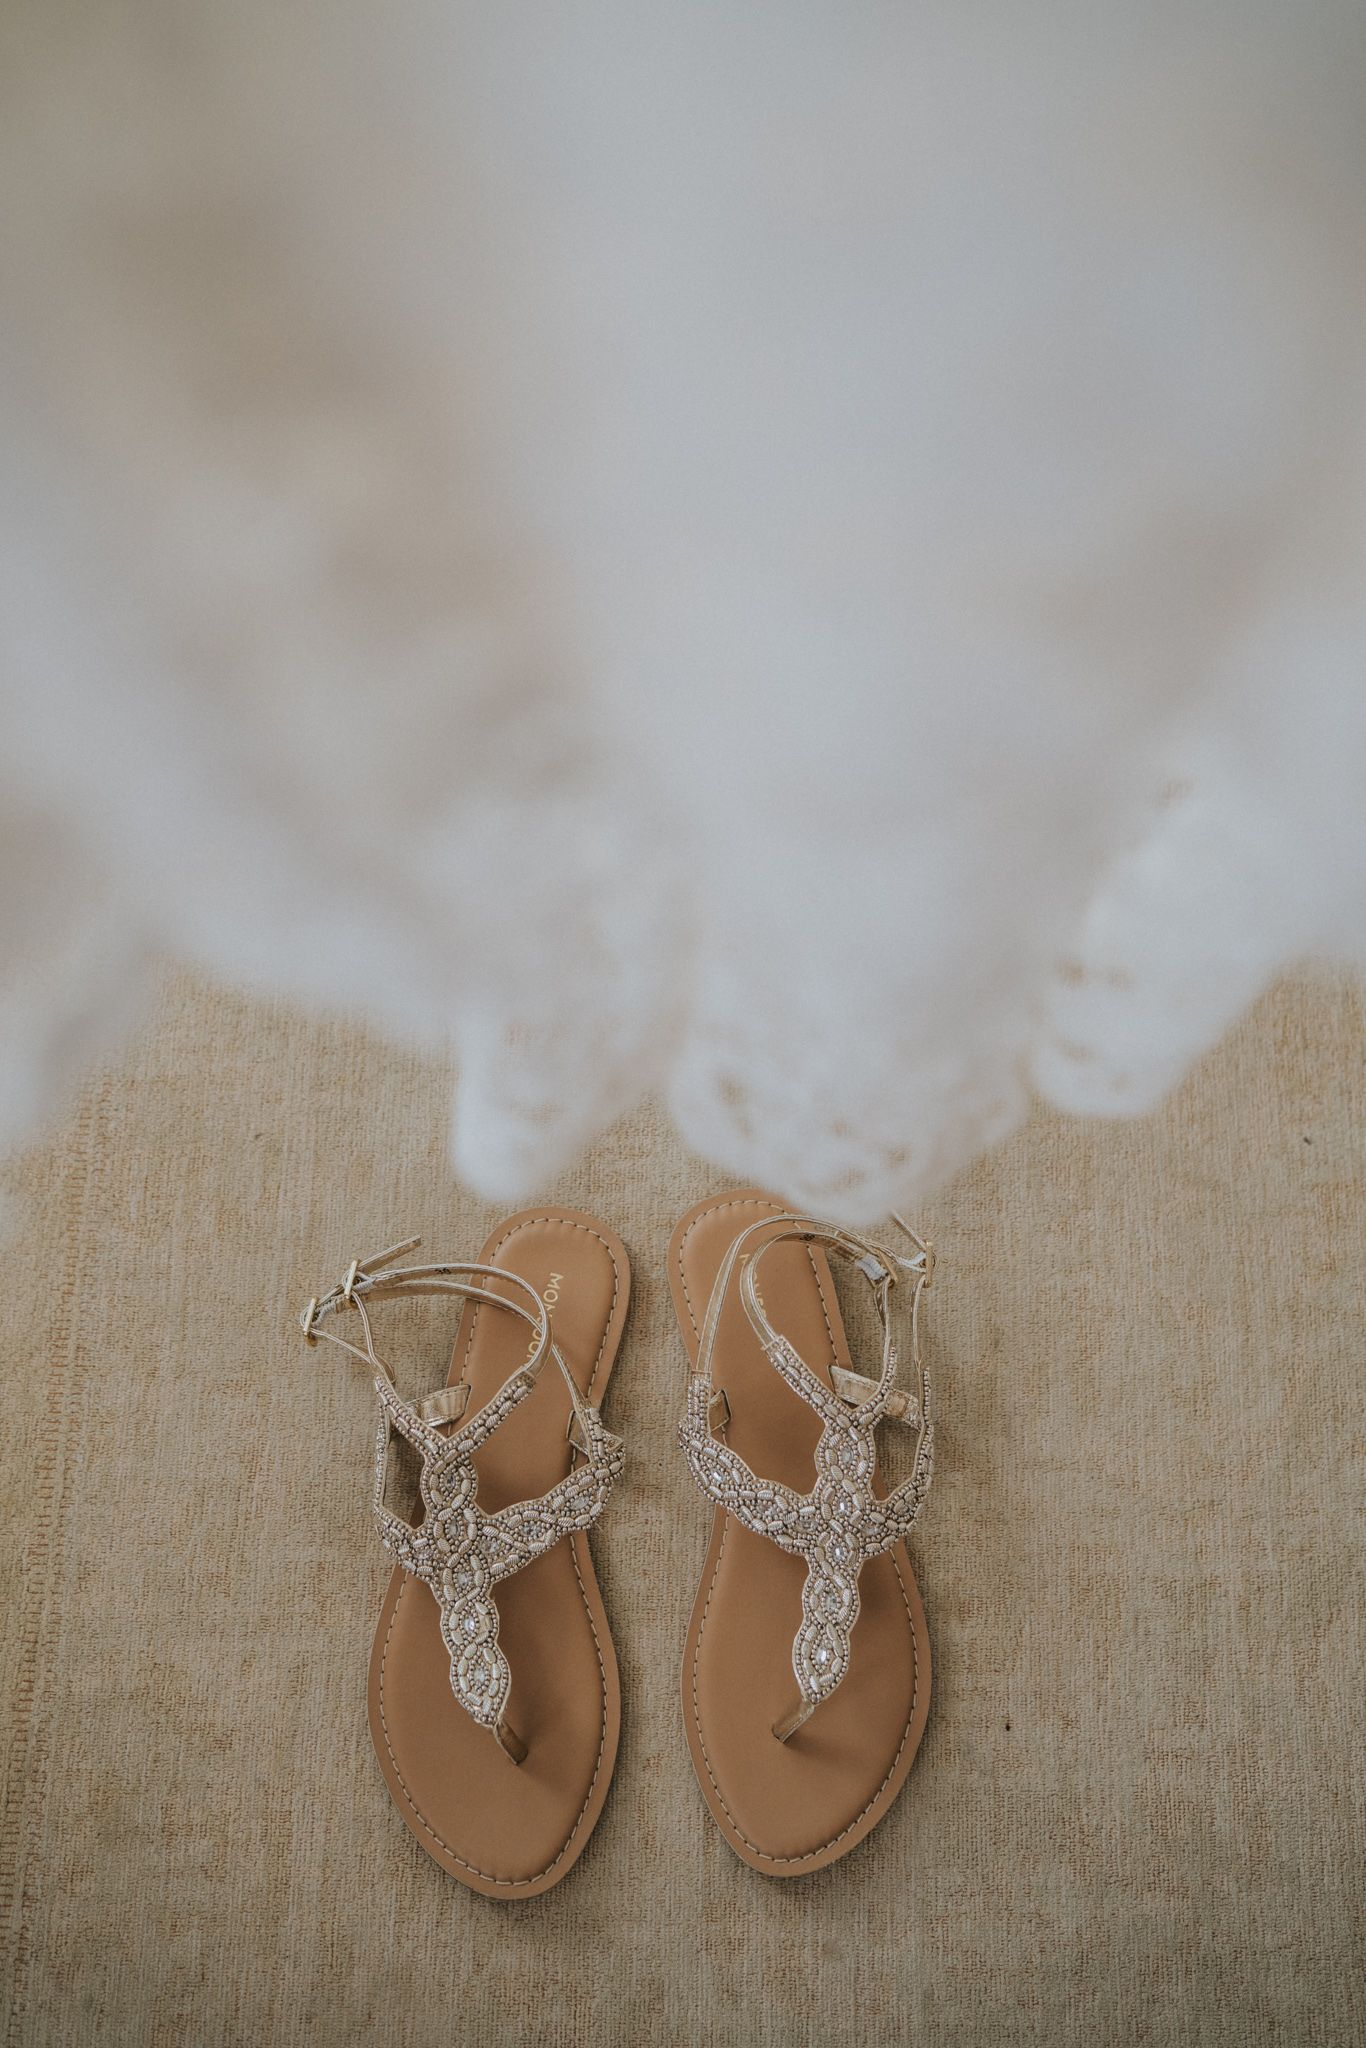 Monsoon Strappy Flat Sandals As Wedding Shoes With A Vintage